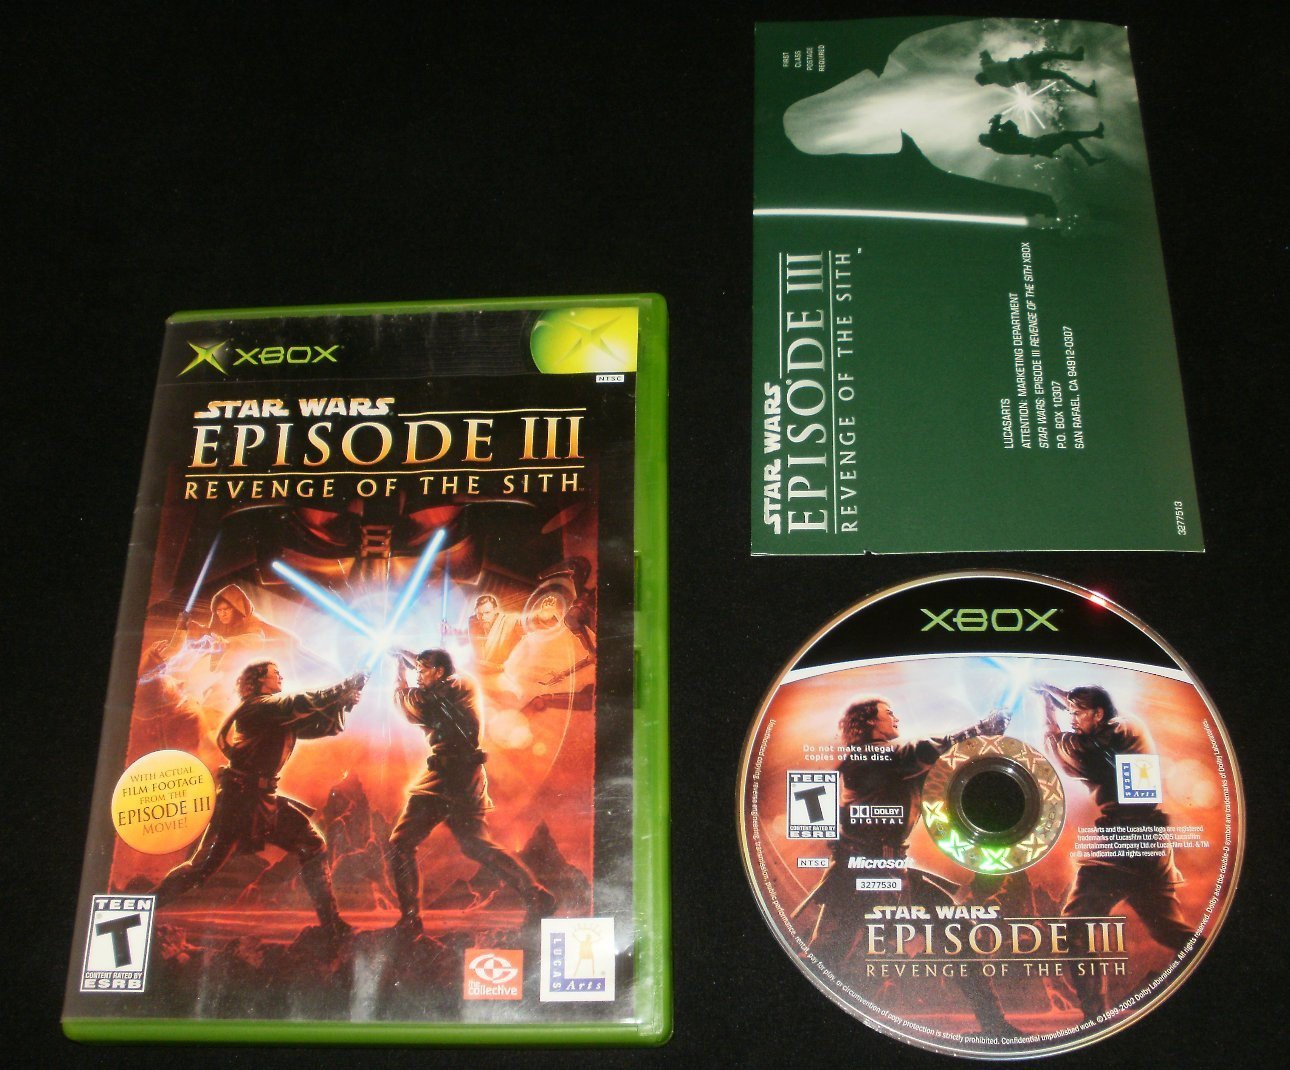 Star Wars Episode III Revenge of the Sith - Xbox - With Box